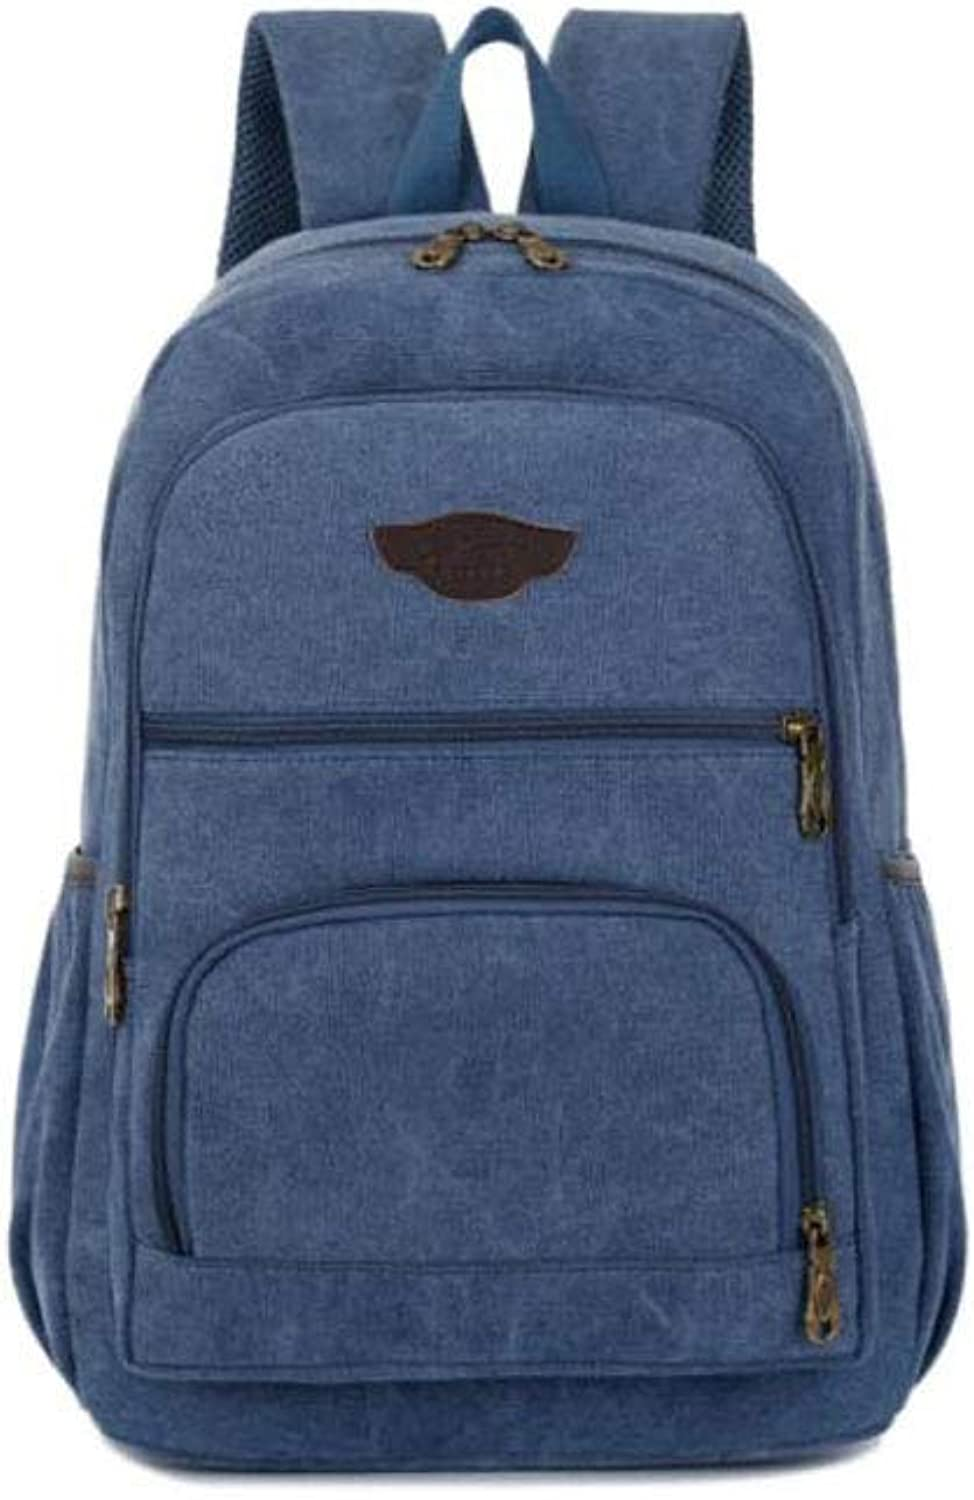 HENG LargeCapacity Sports and Leisure Canvas Backpack, Brown for Hiking, Traveling & Camping (color   blueee)